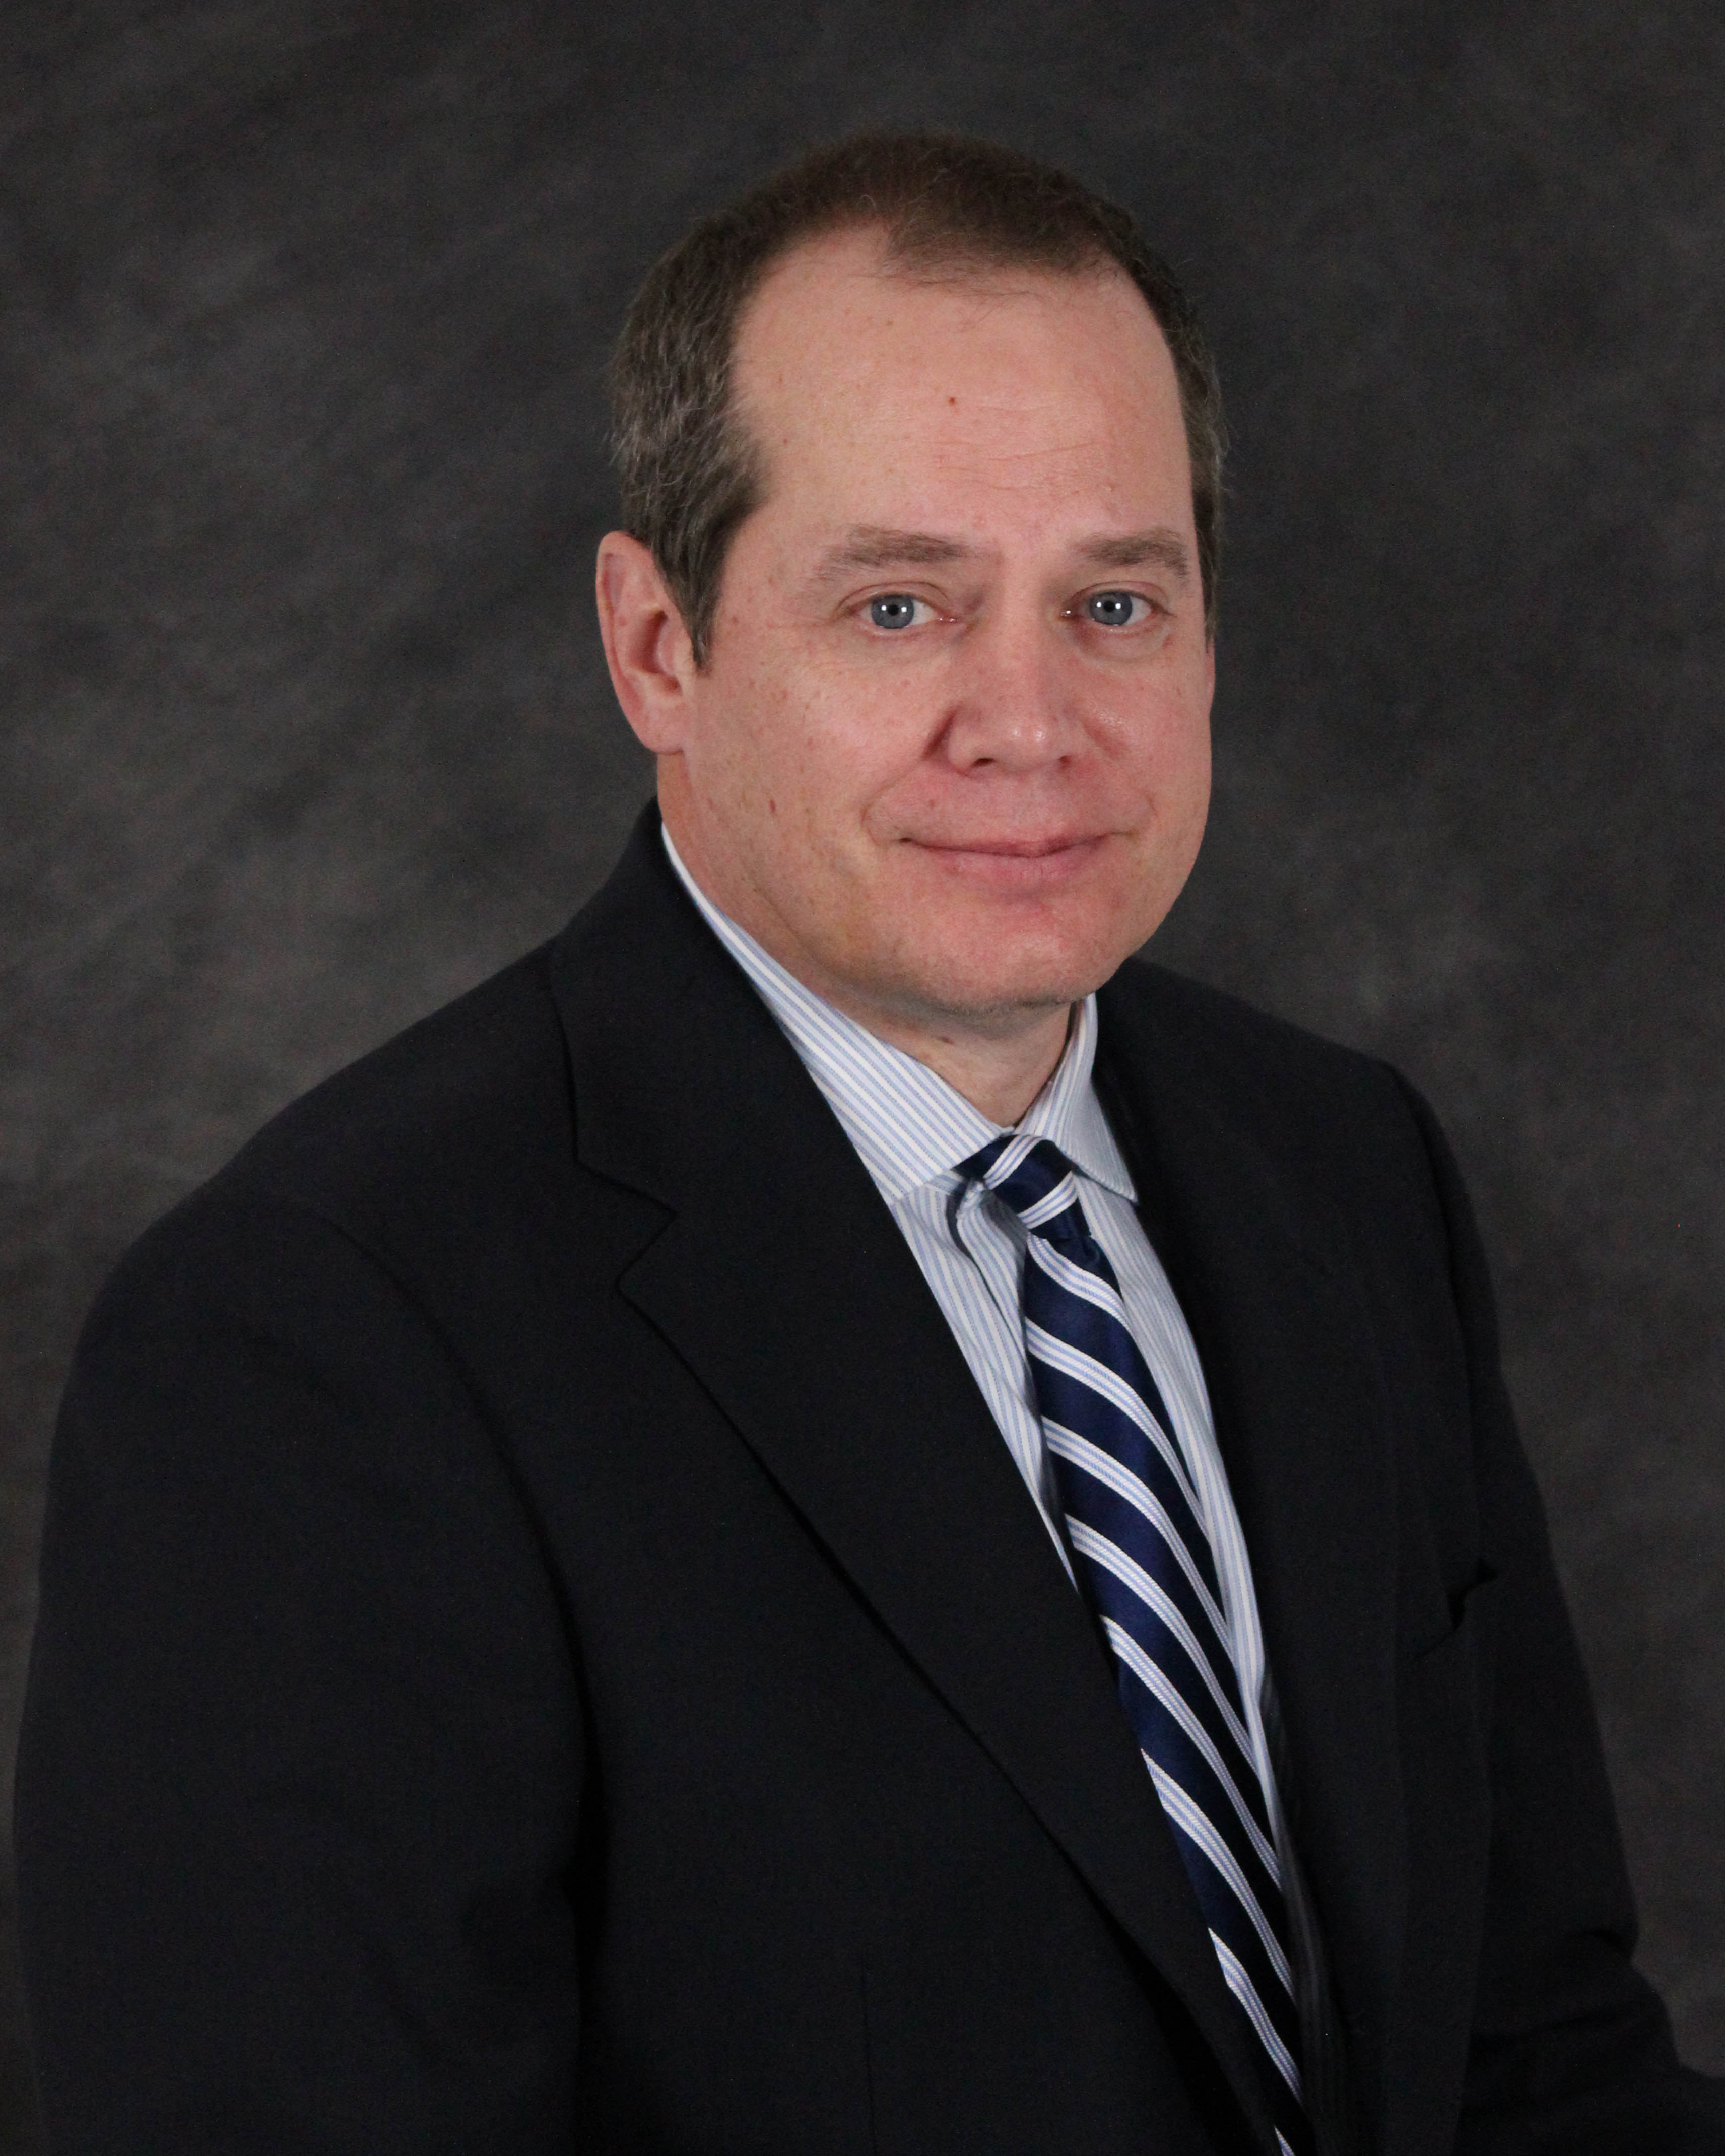 Southwest Medical Center Welcomes New Radiologist, Dr. Williams